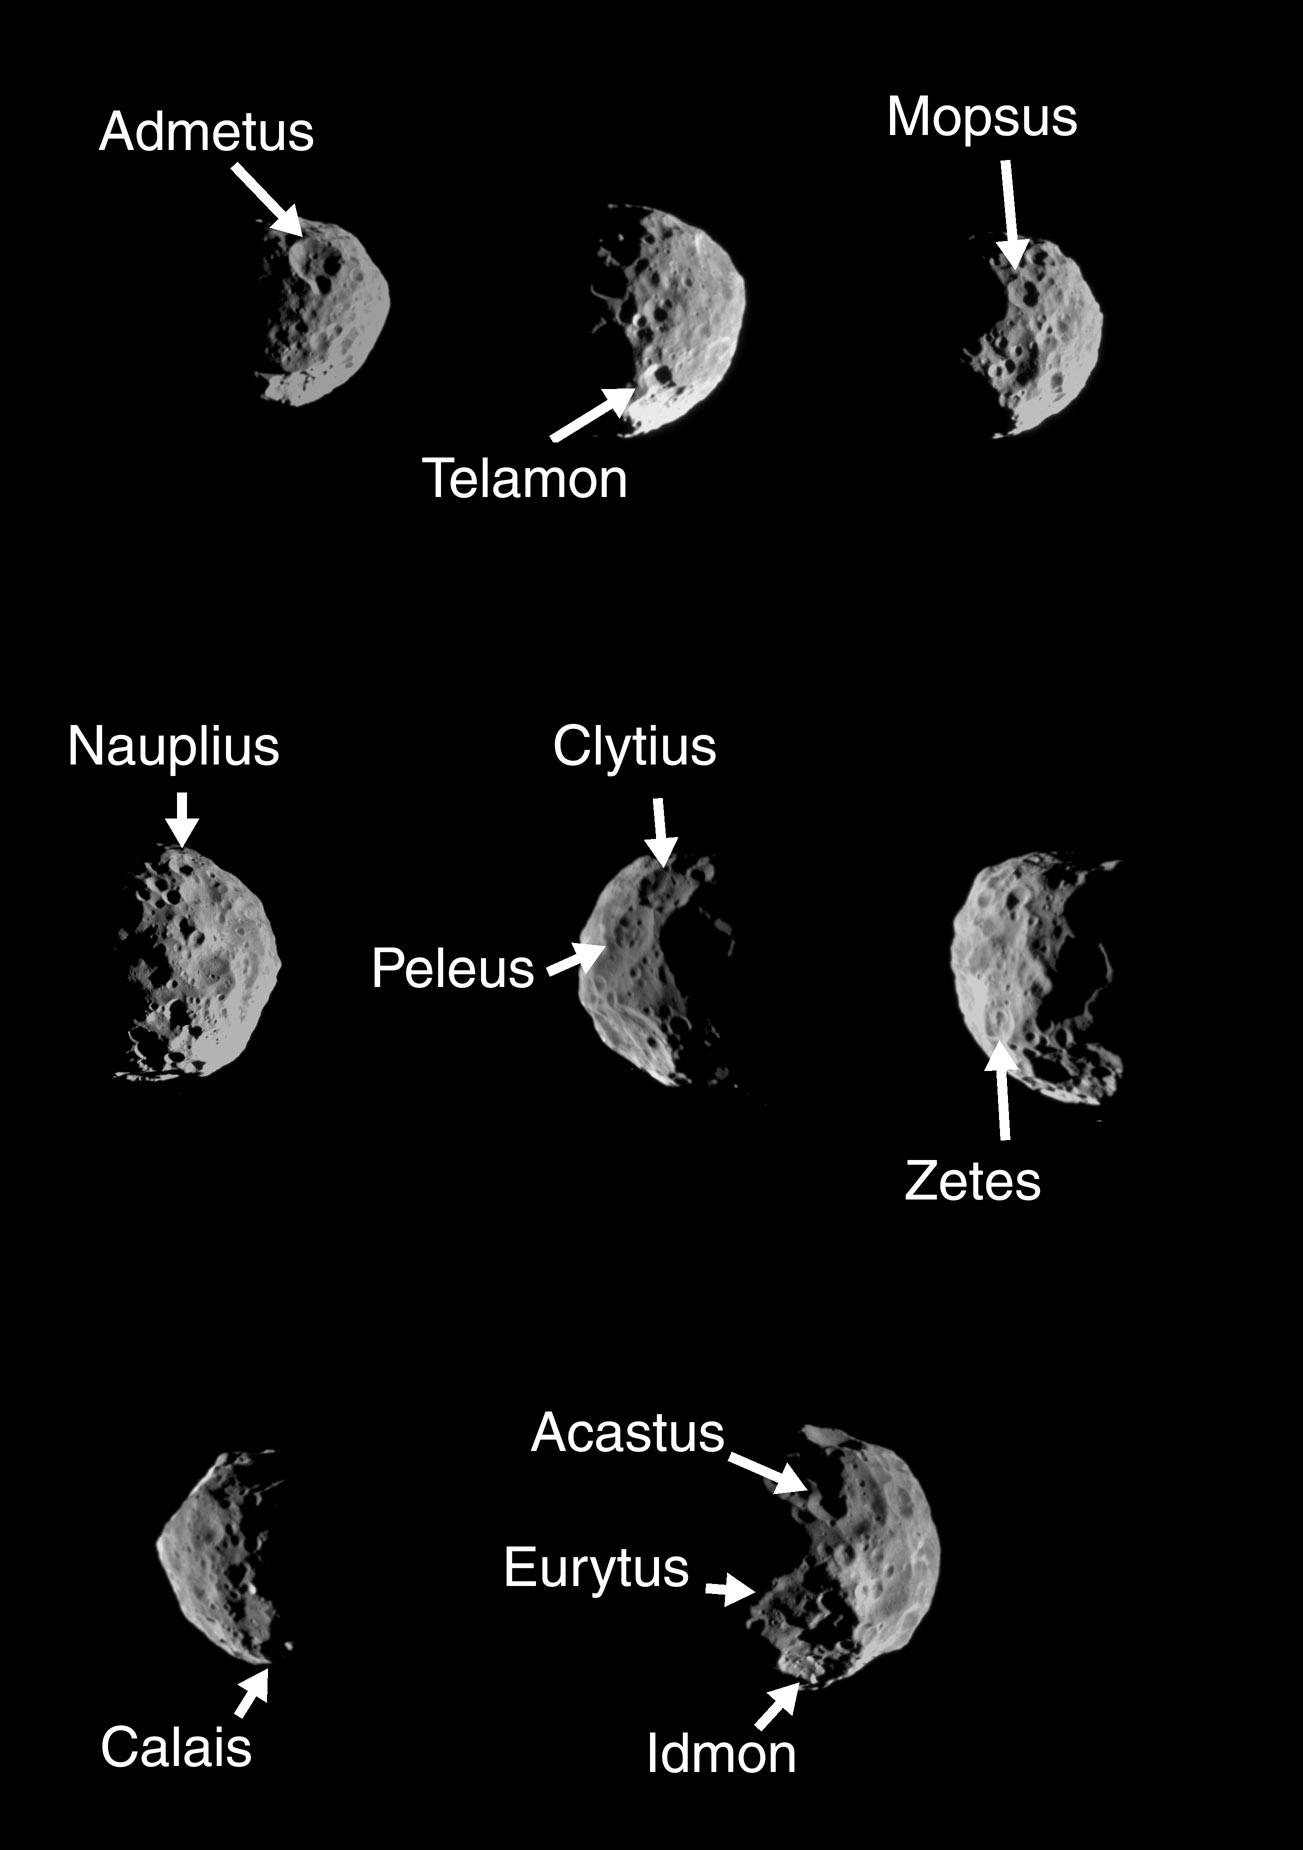 Montage of Saturn's moon Phoebe with craters labeled